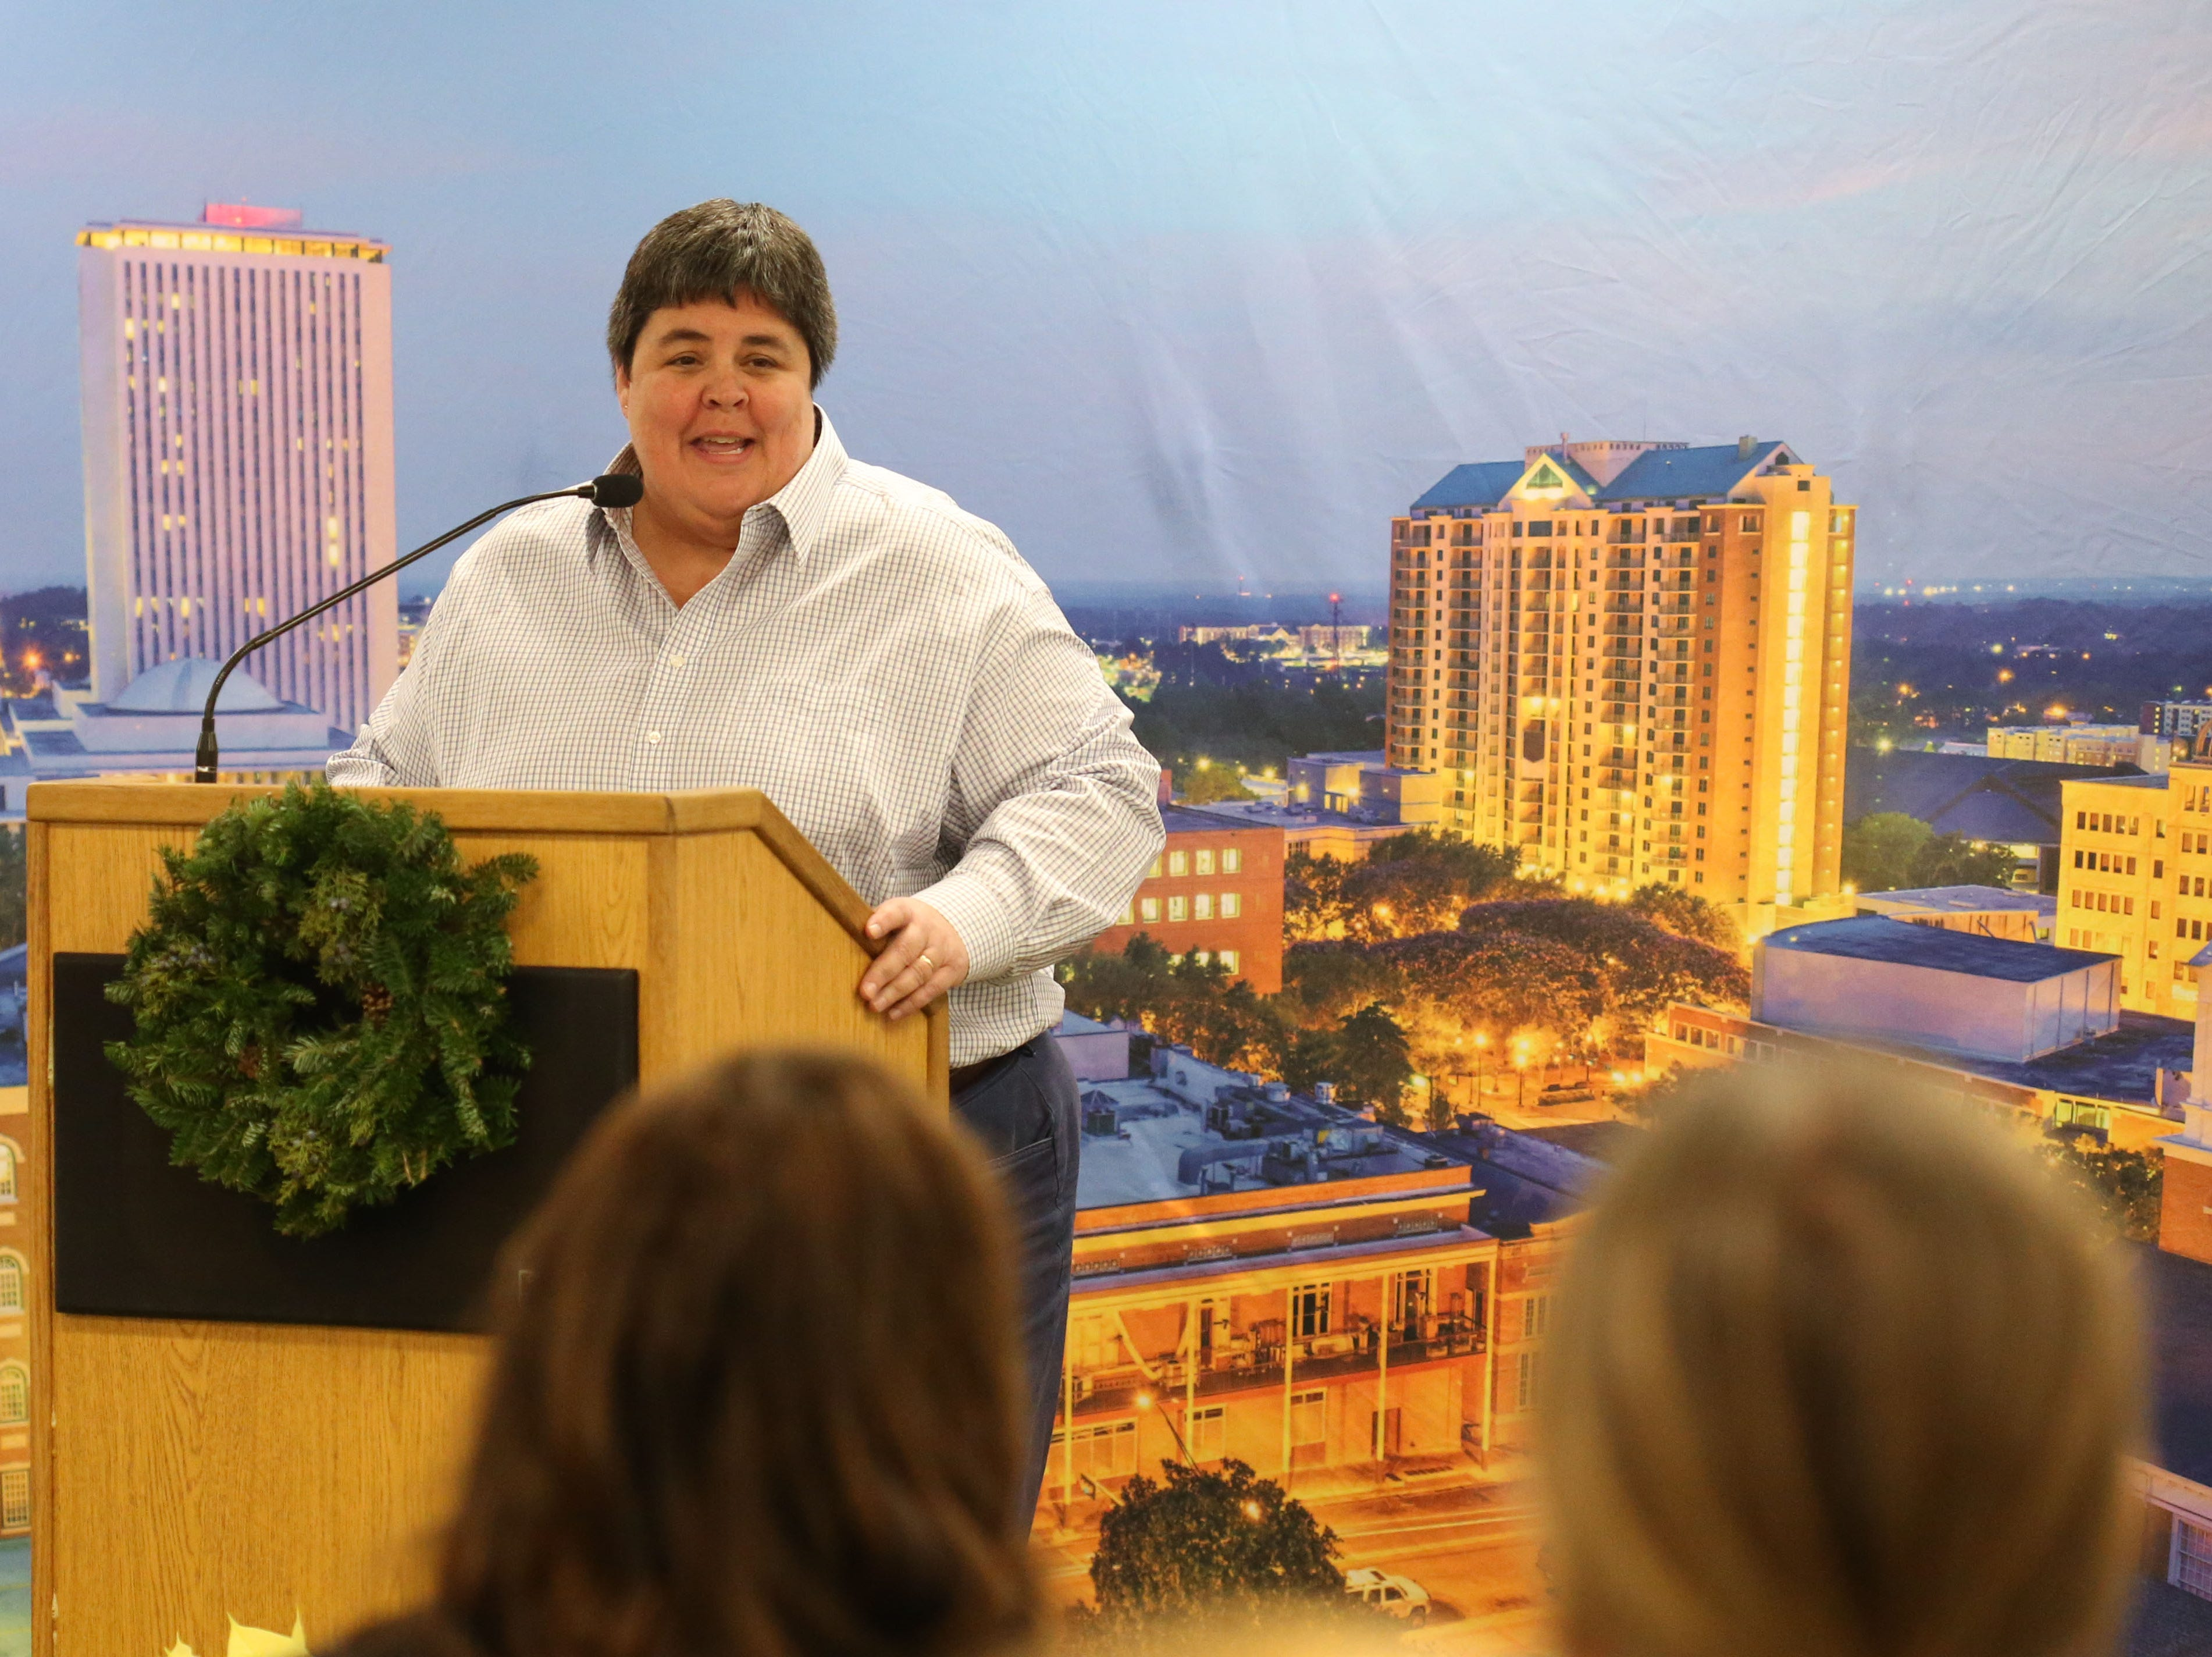 Ashley Edwards, director of City of Tallahassee Park, Recreation, and Neighborhood Affairs, speaks at a launch party held at the Tallahassee Democrat for Gerald Ensley's book, 'We Found Paradise,' Thursday, Dec. 6, 2018.